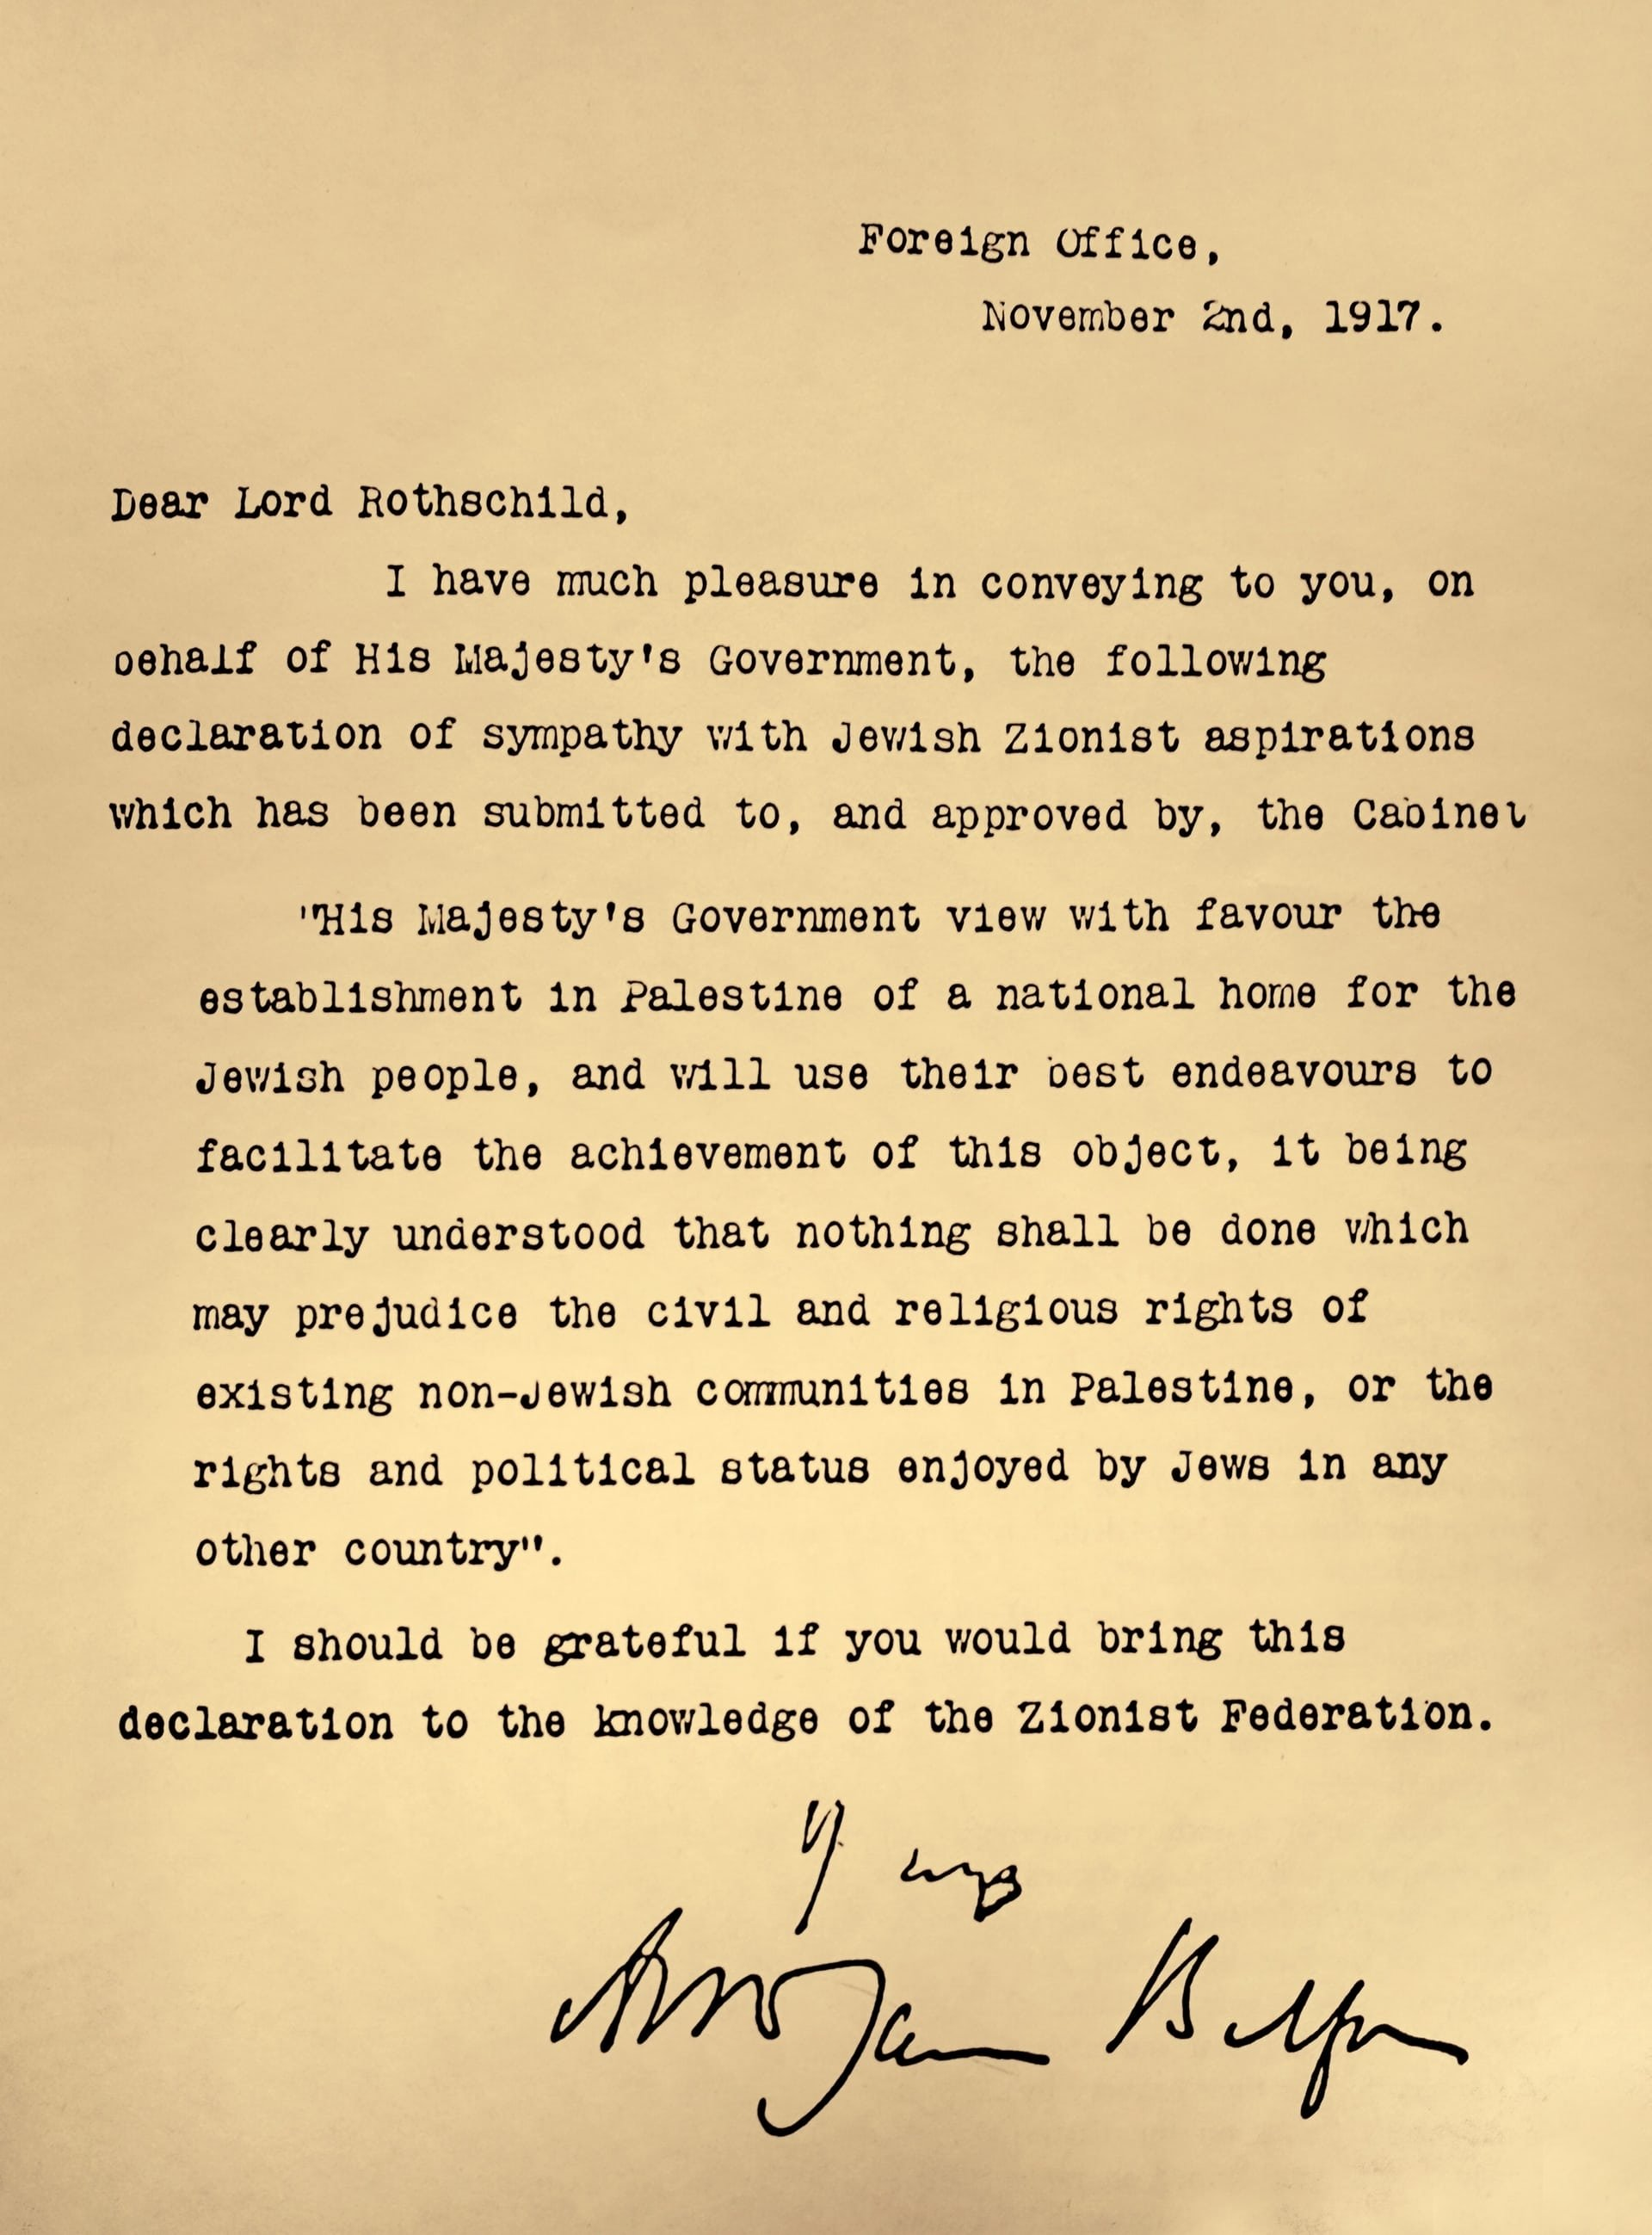 10 Fantastic The Balfour Declaration Of 1917 Supported The Idea Of A rashid khalidi balfour declaration must be matchednational home 2020